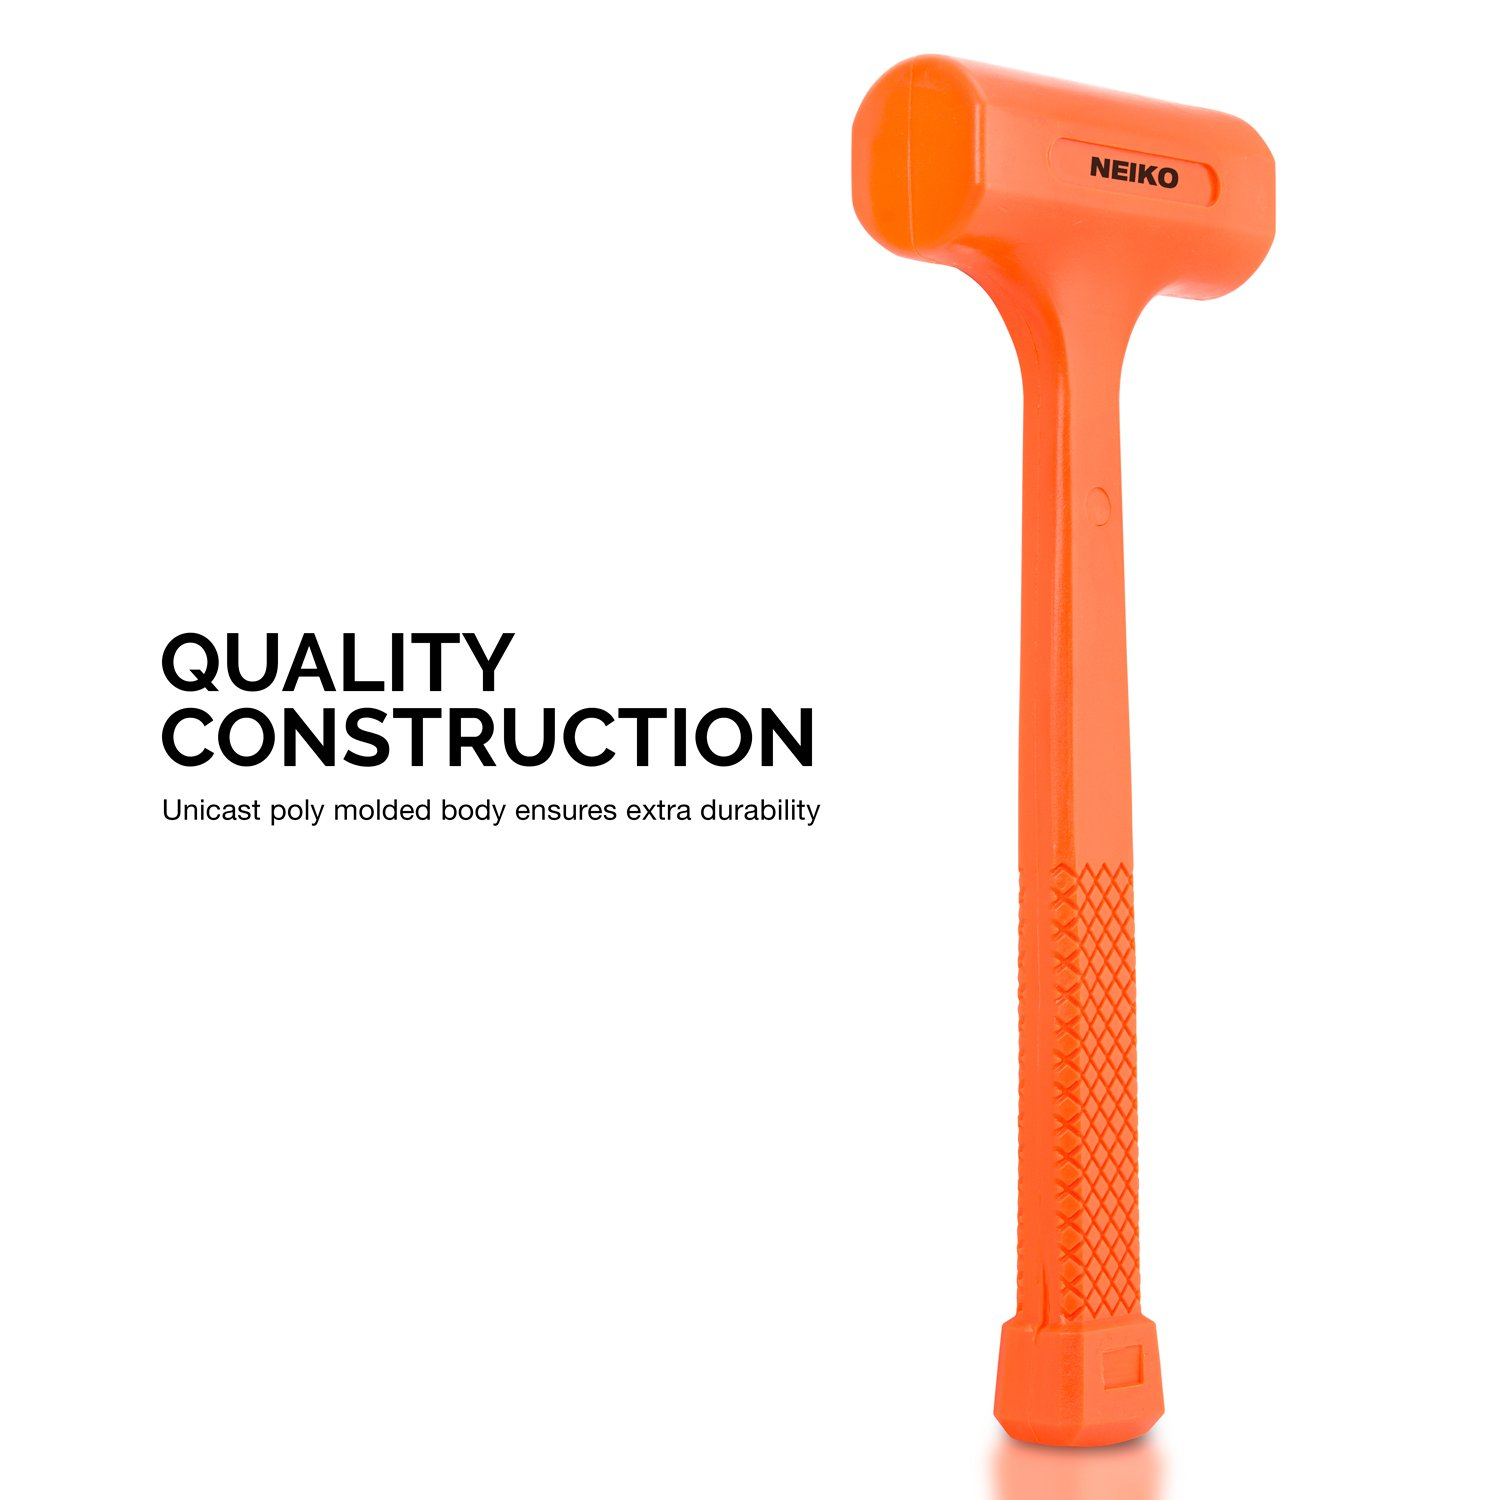 Neiko 02846A 1 LB Dead Blow Hammer, Neon Orange | Non Slip Handle by Neiko (Image #3)